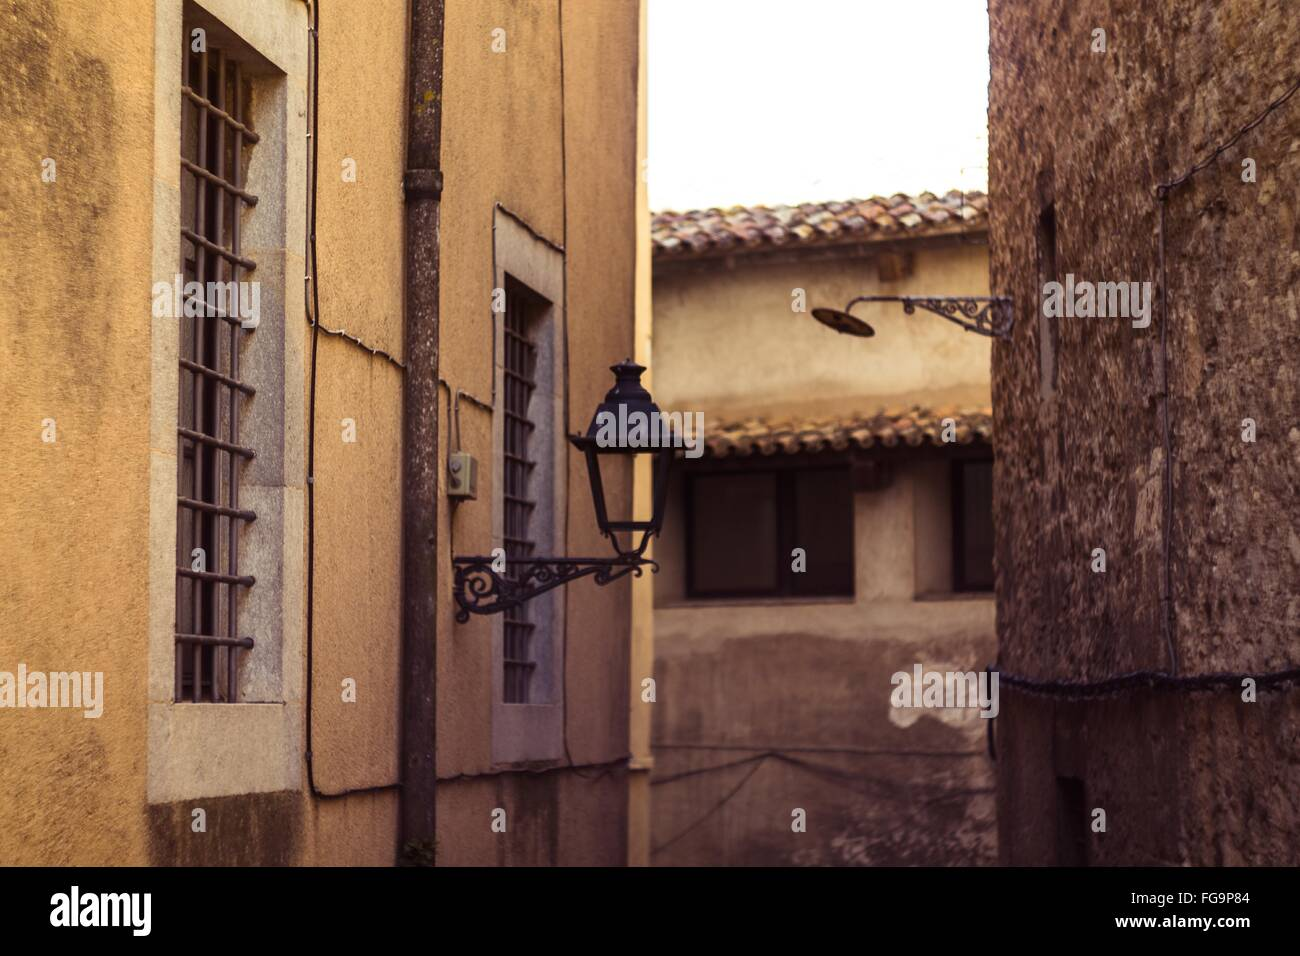 Light Fixture Mounted On Building - Stock Image